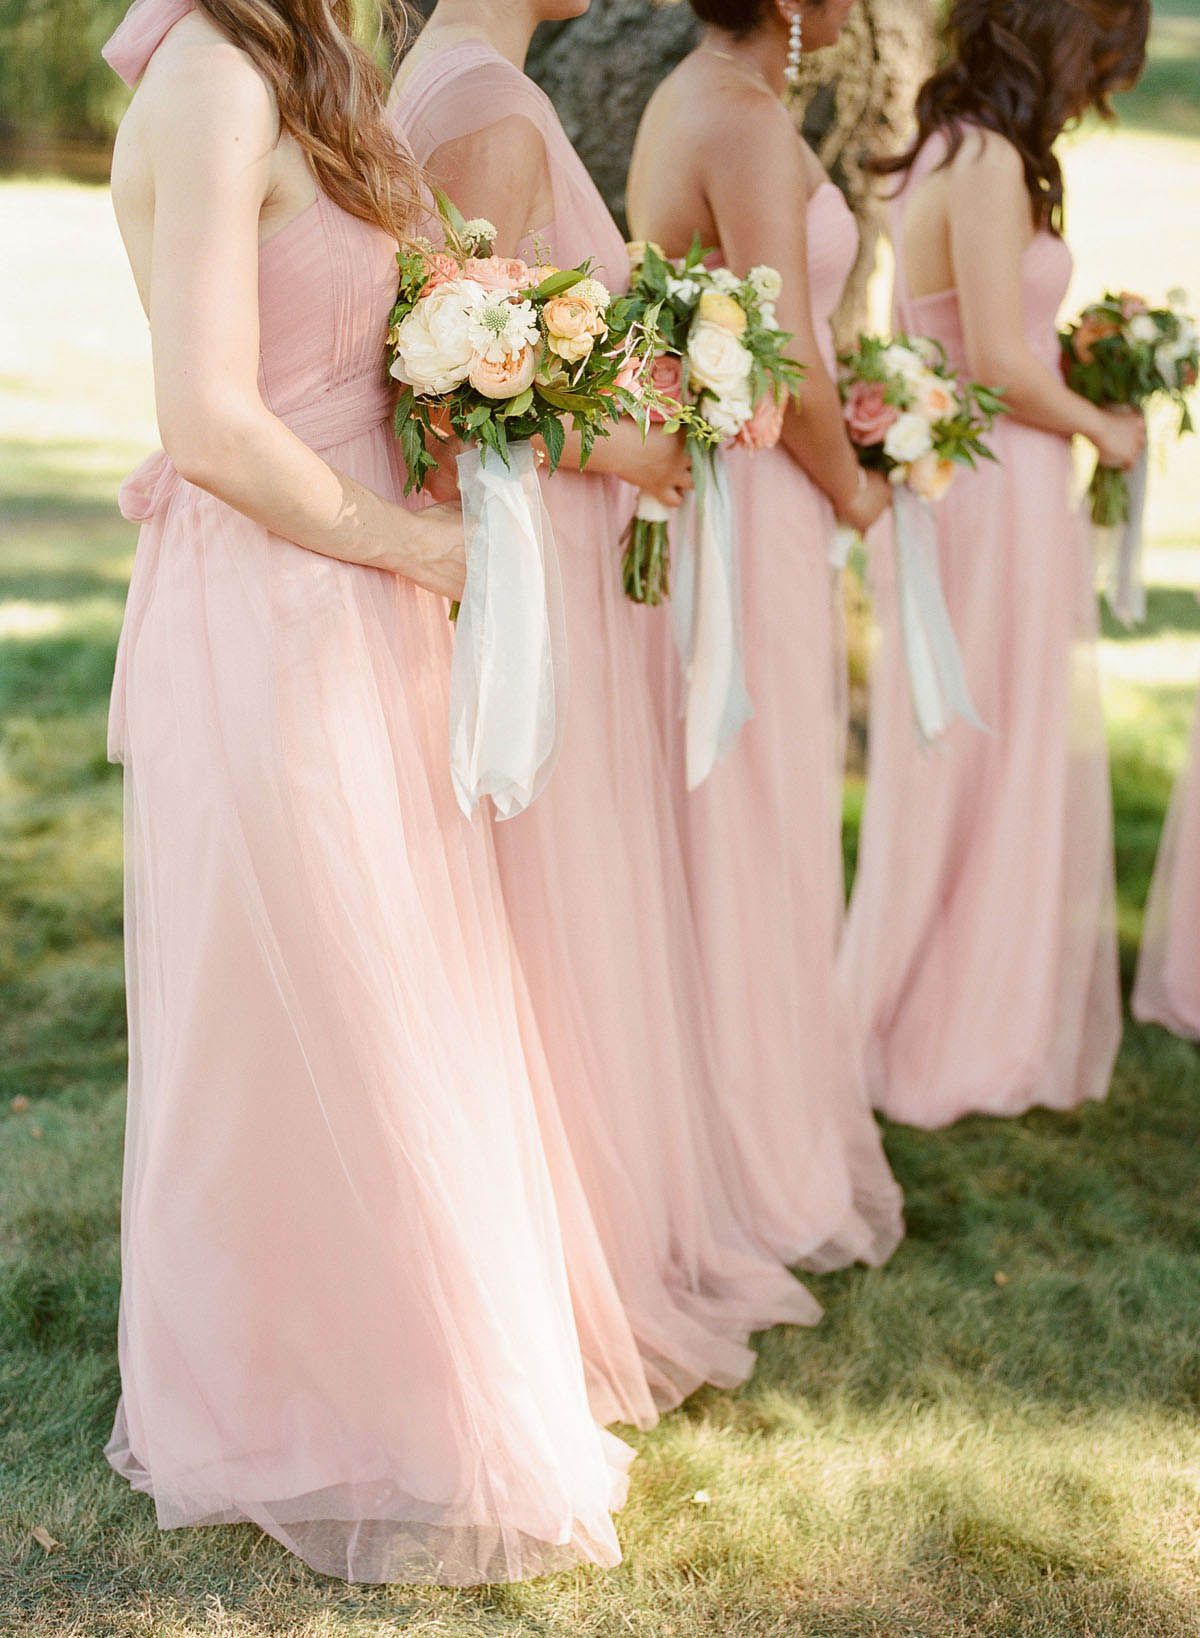 13-pink-bridesmaid-gowns.jpg